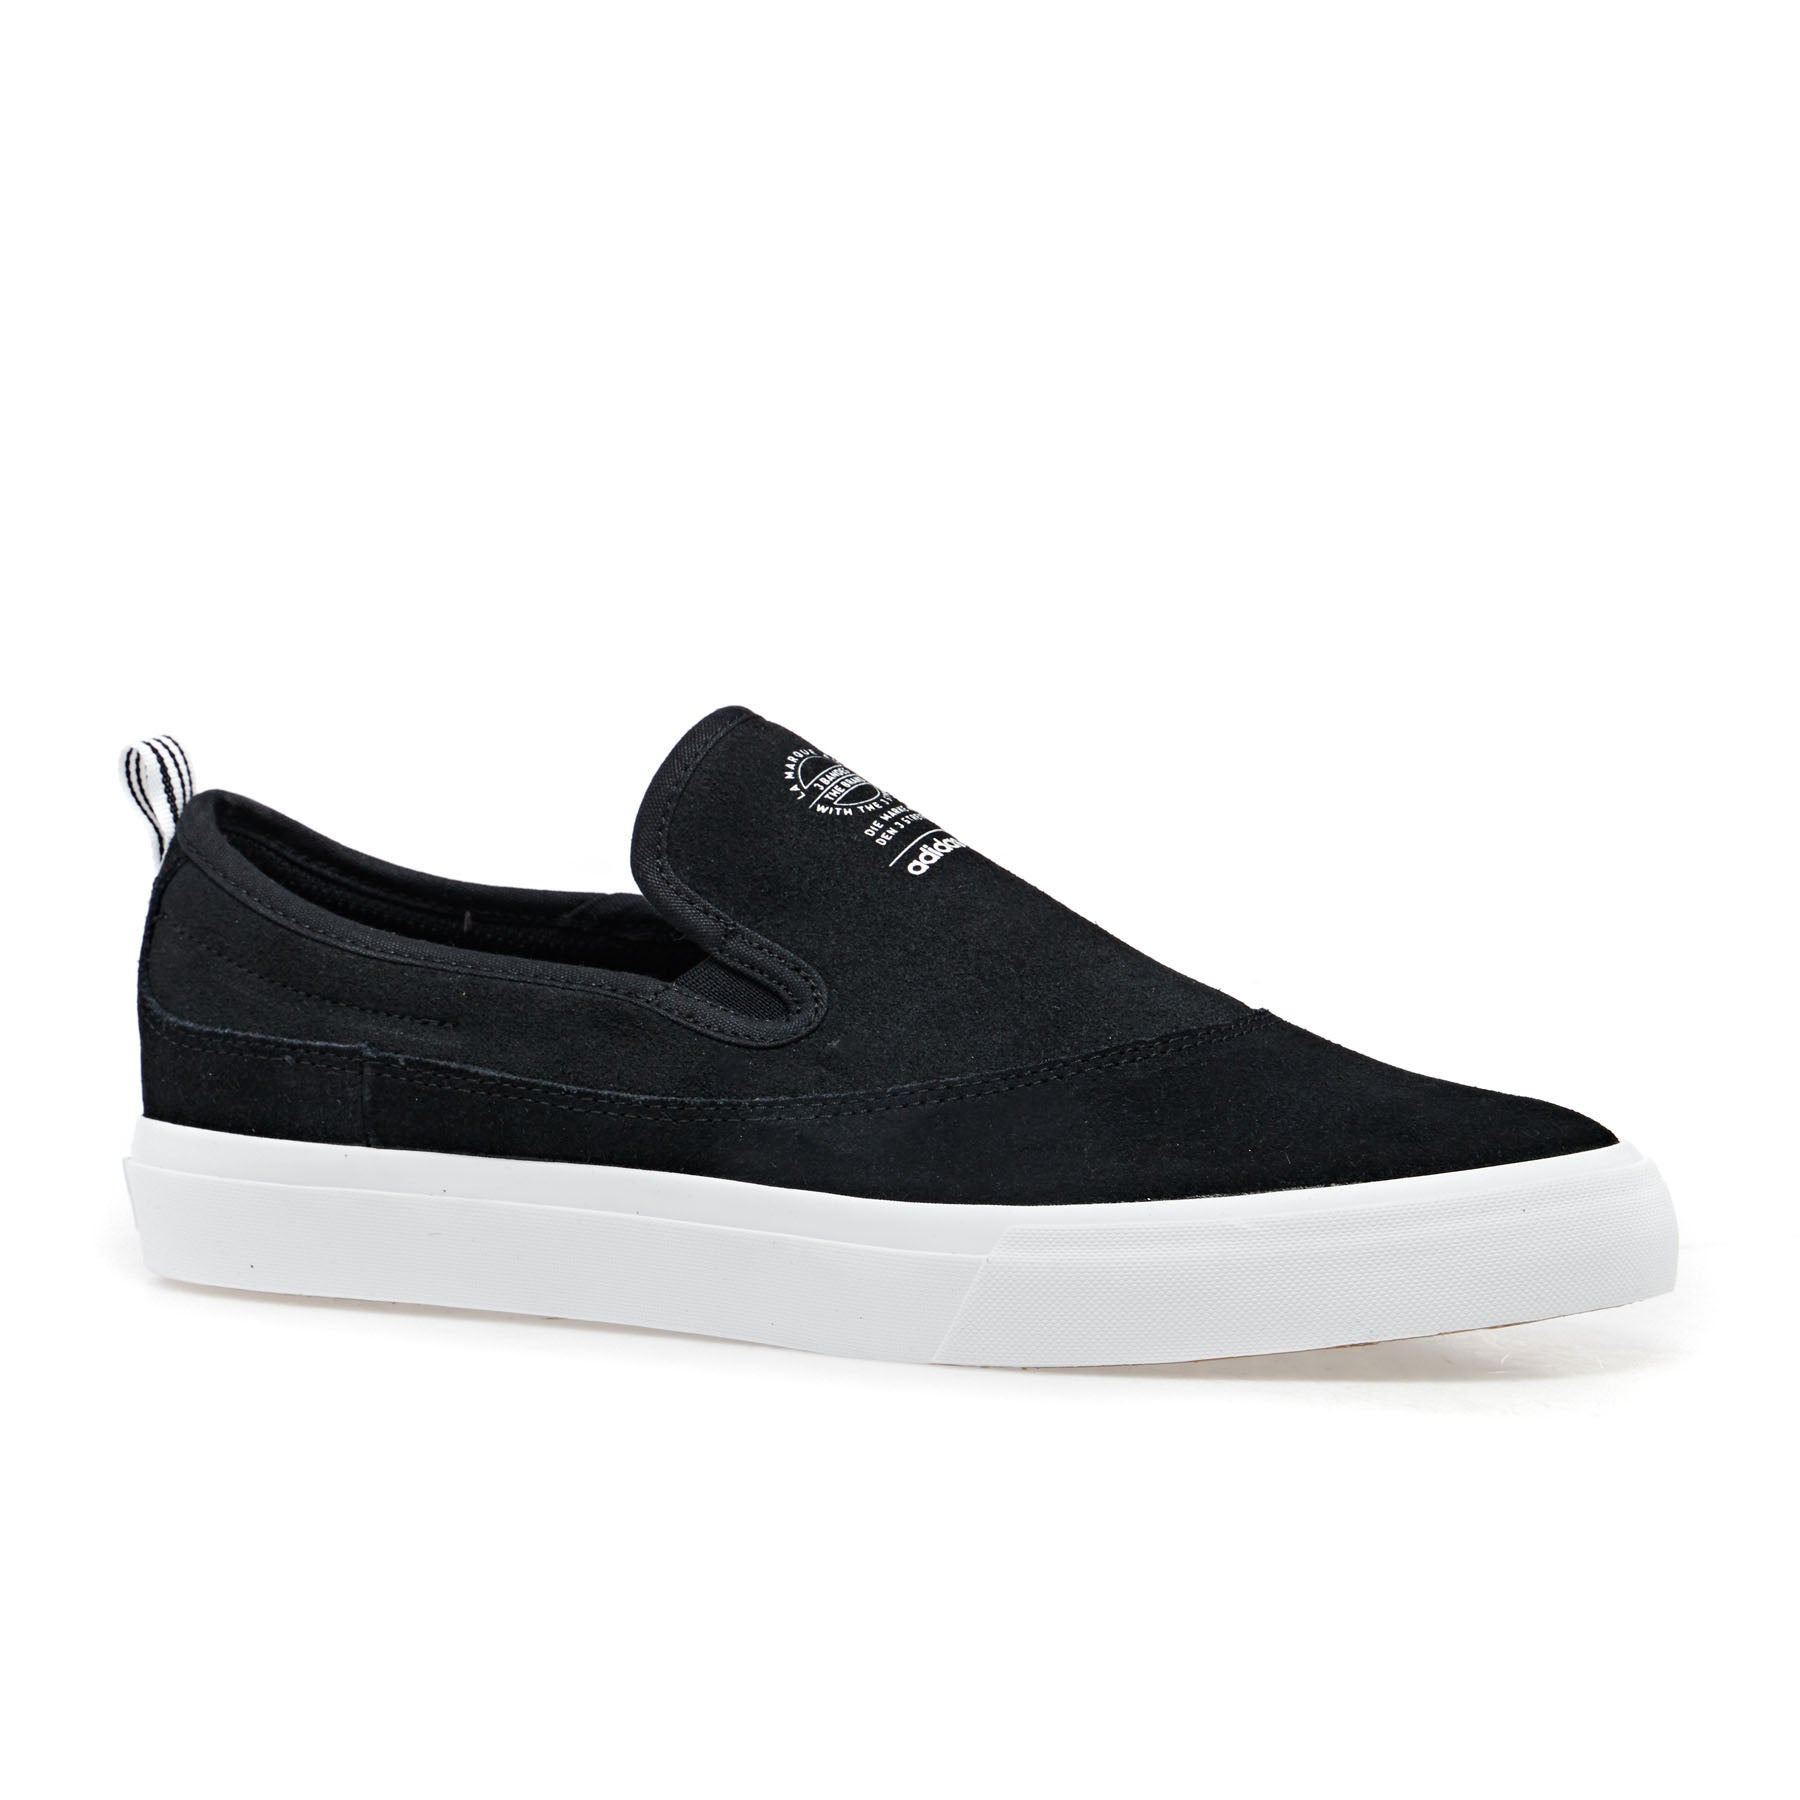 9326d9d46bcf Adidas Matchcourt Slip On Shoes - Free Delivery options on All ...